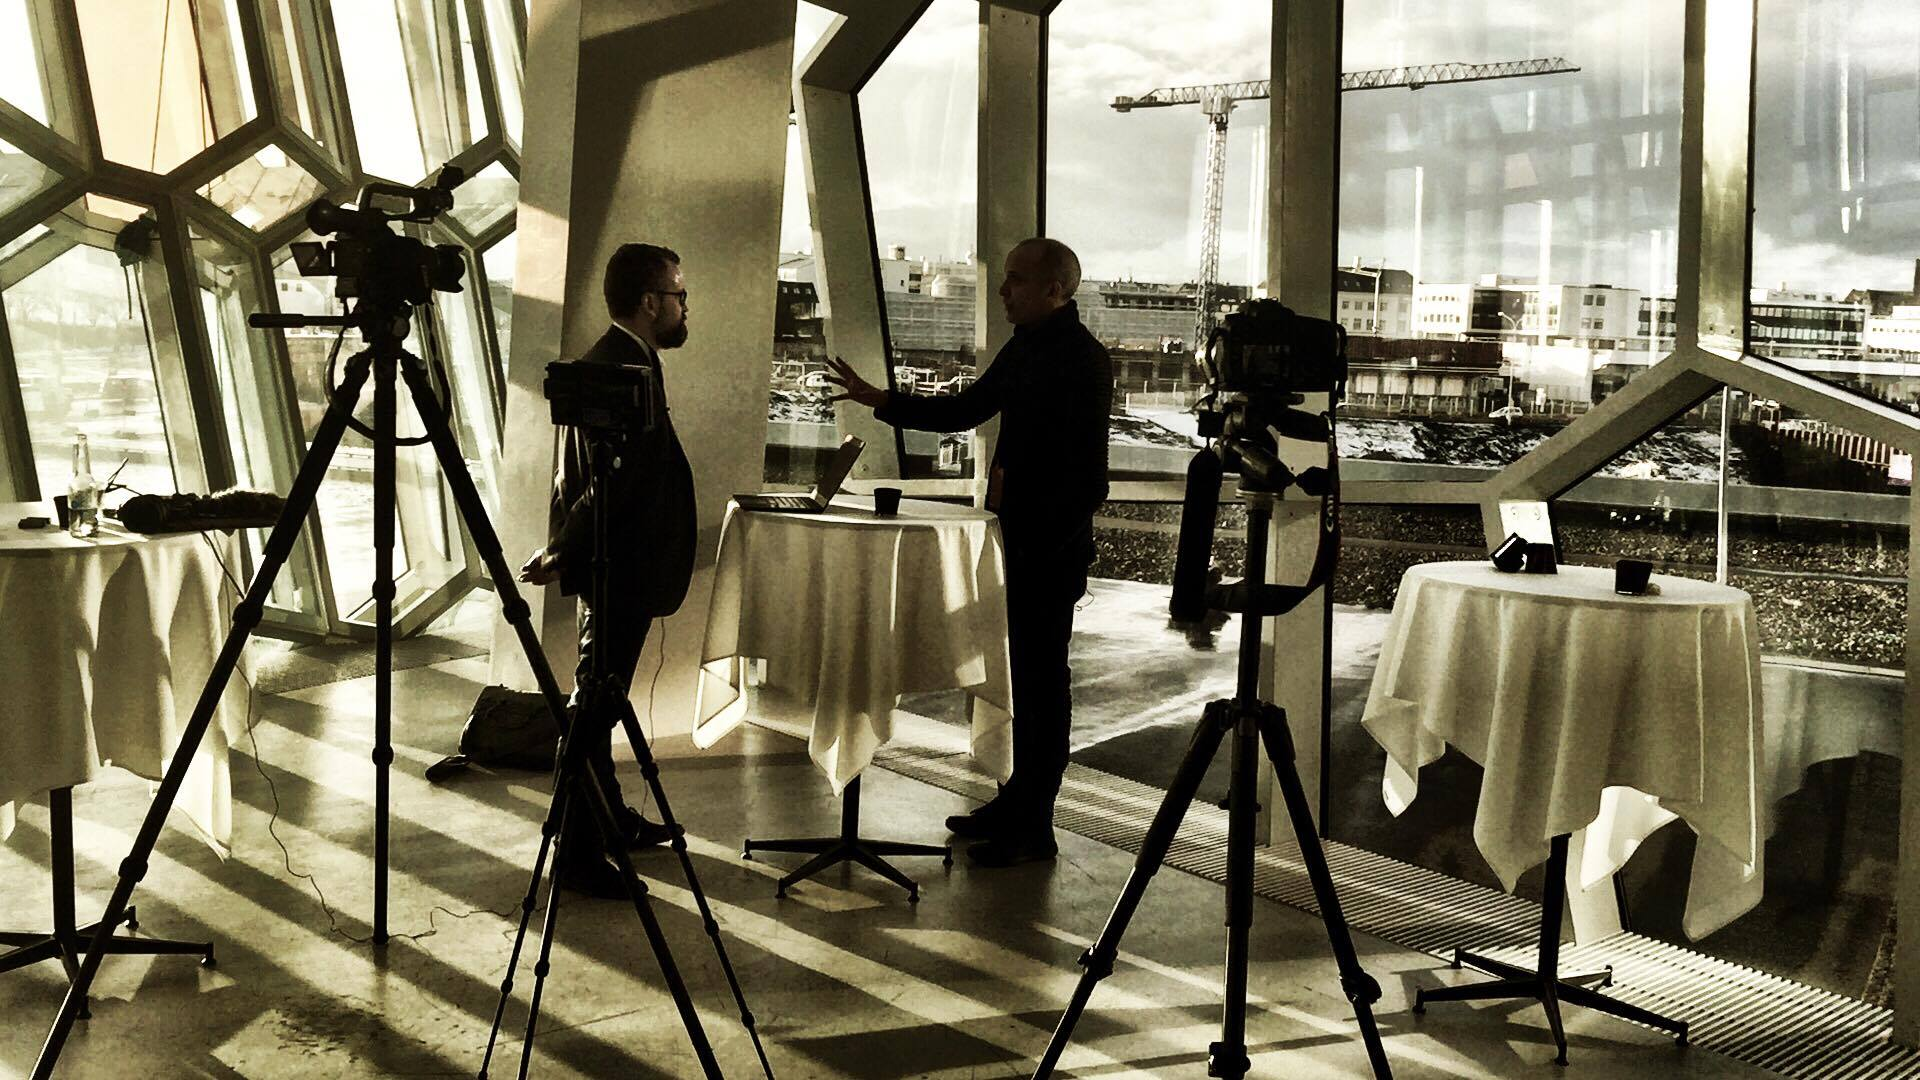 Interview with Paul Boag at IceWeb 2017